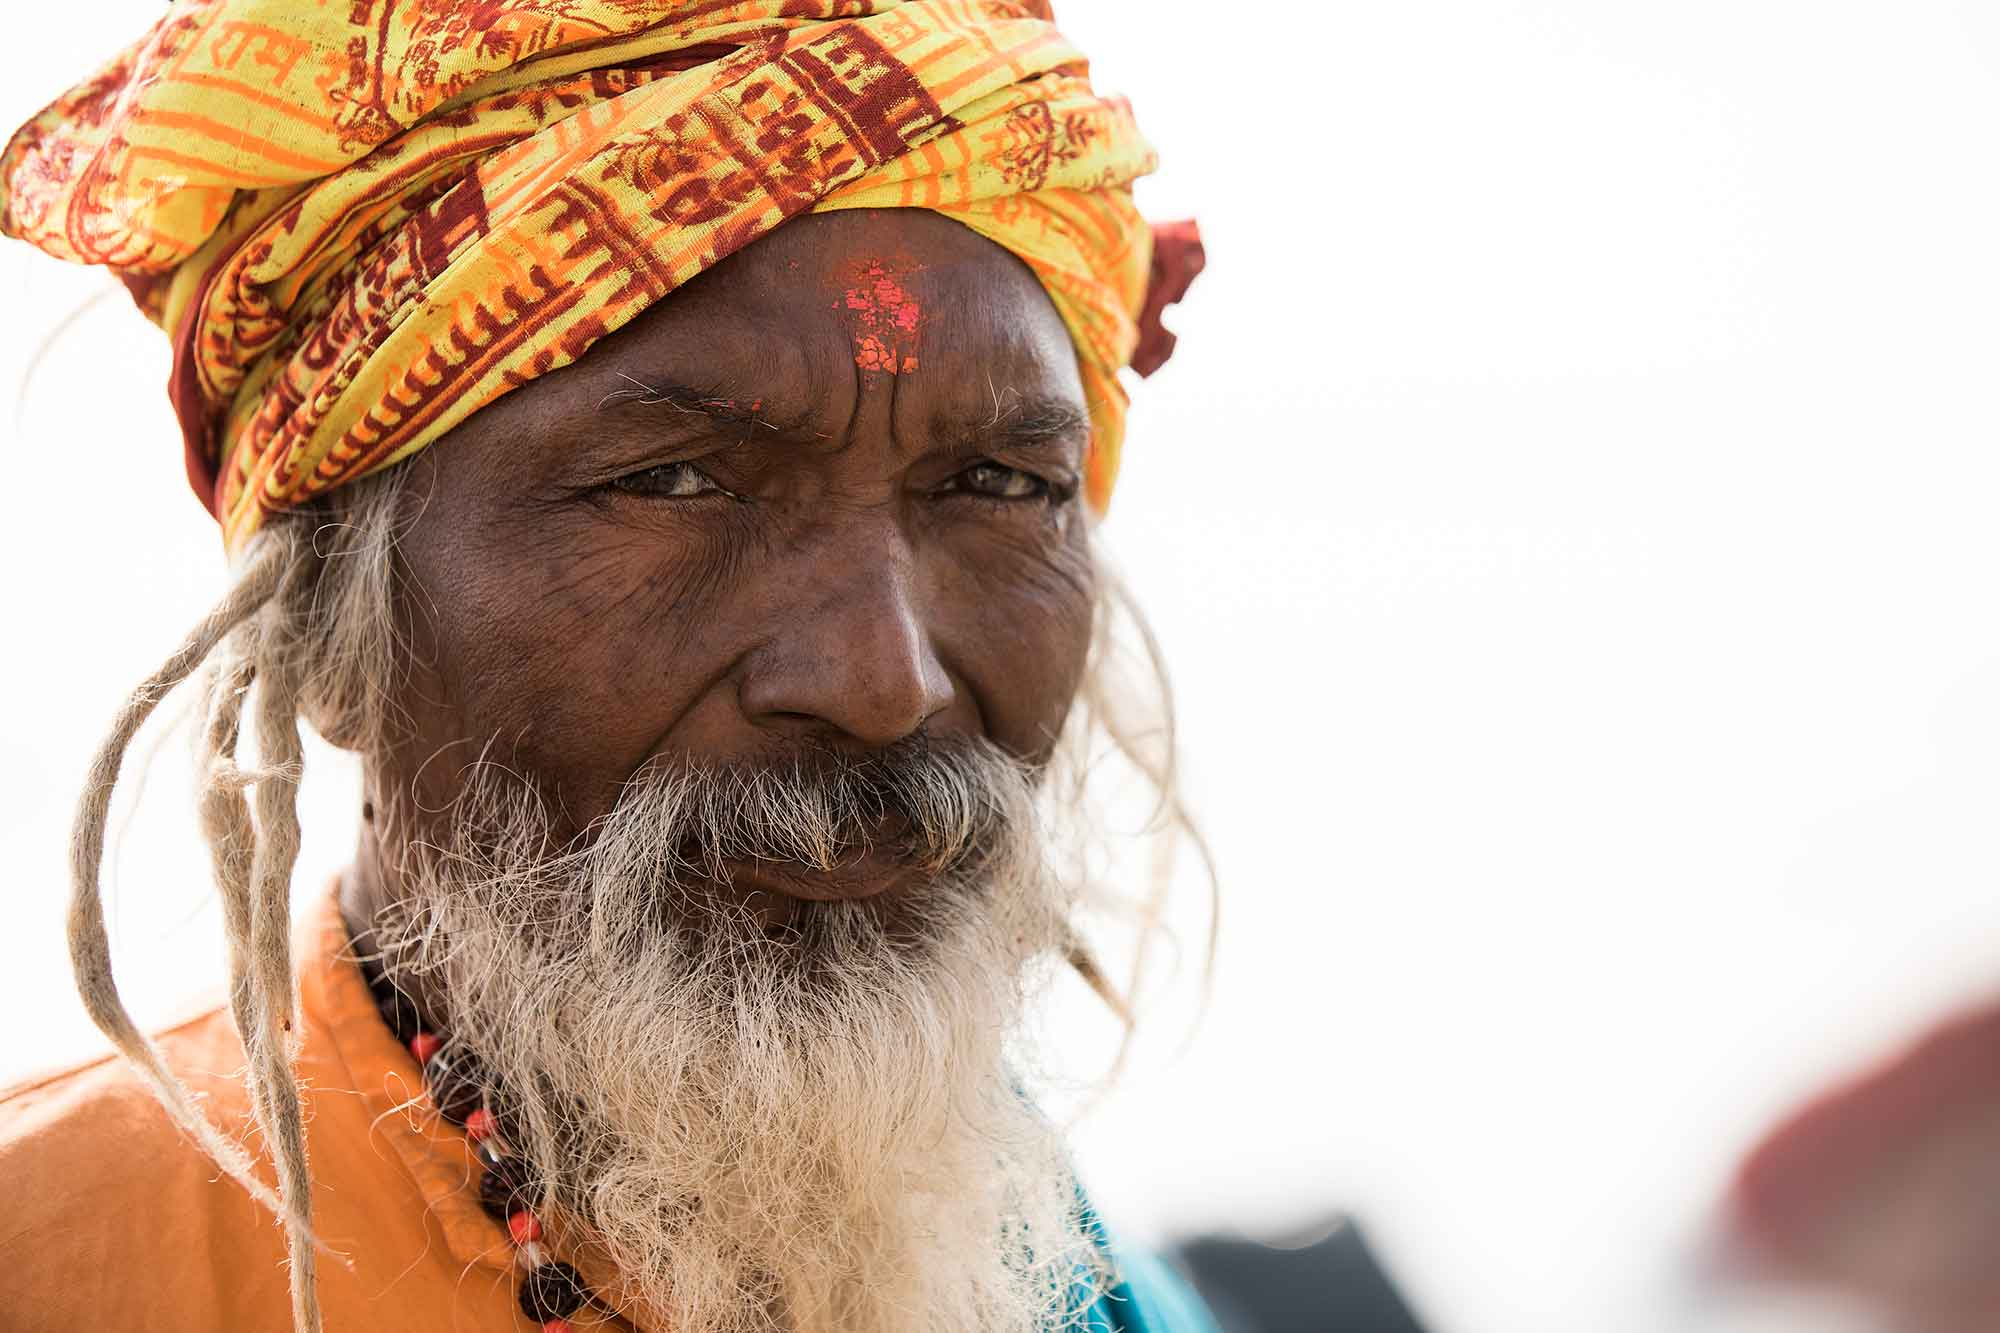 sadhu-portrait-varanasi-india-6